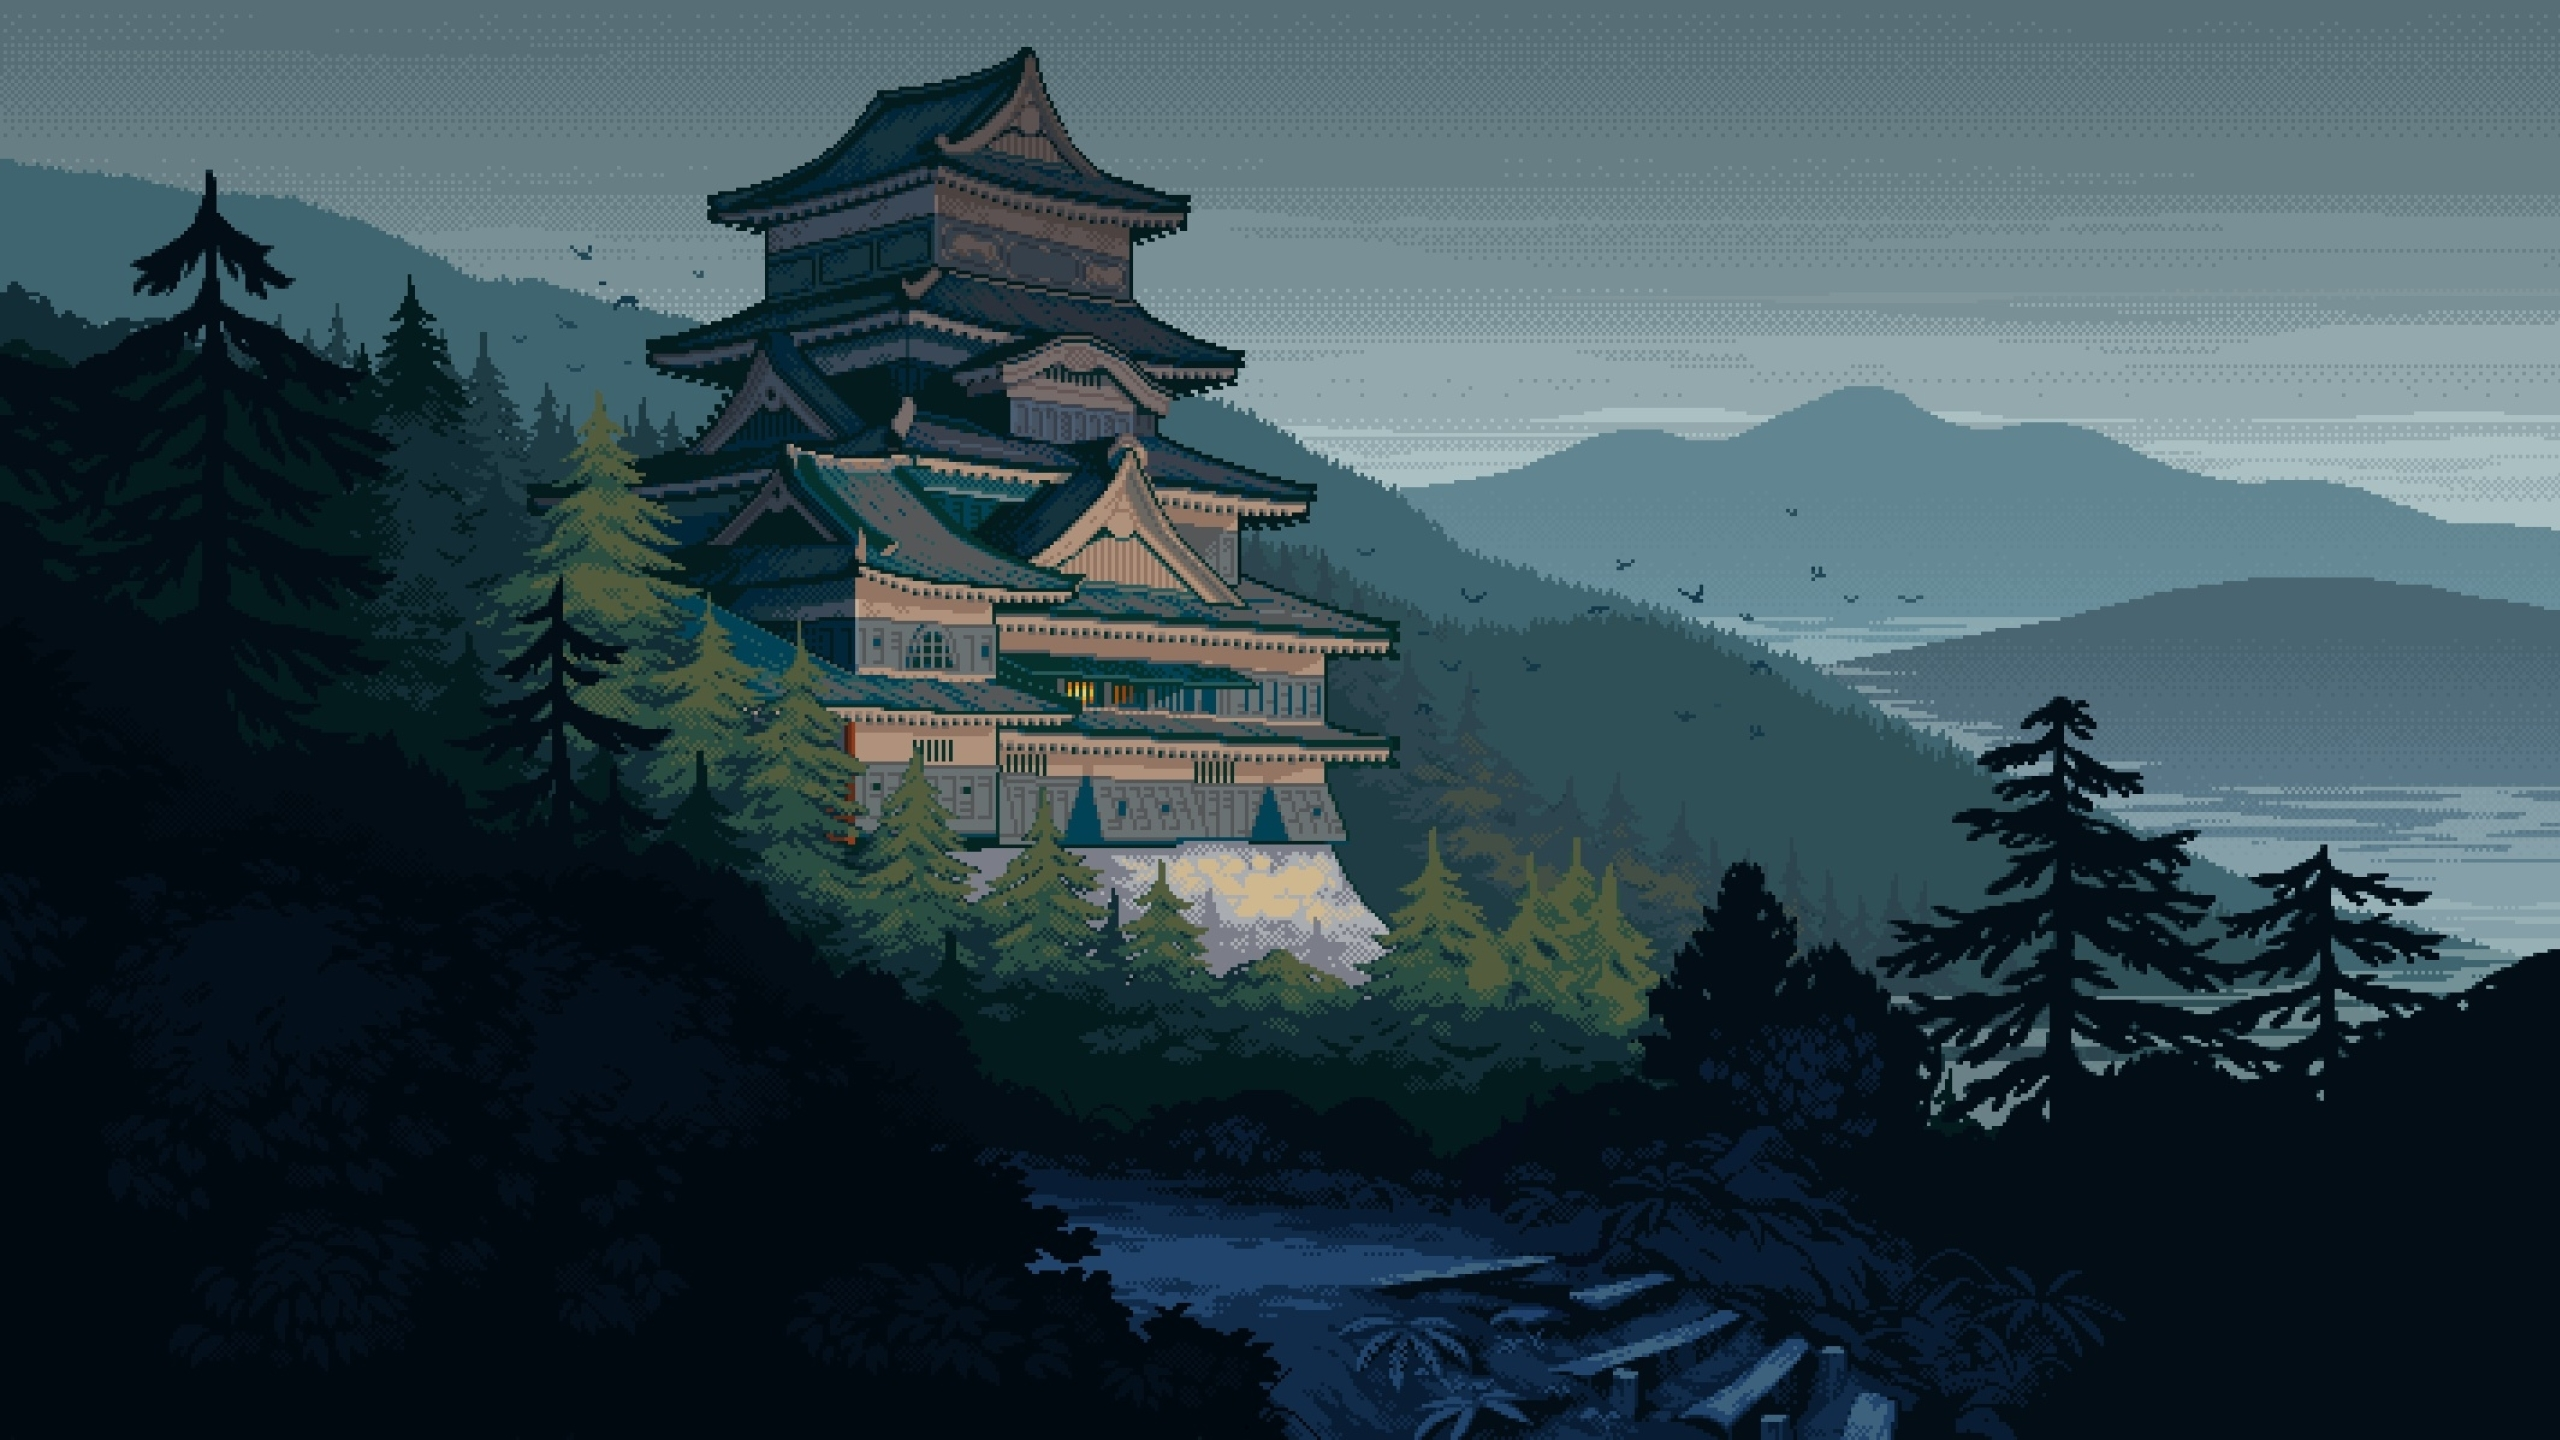 2560x1440 Japanese Castle Pixel Art 1440p Resolution Wallpaper Hd Artist 4k Wallpapers Images Photos And Background